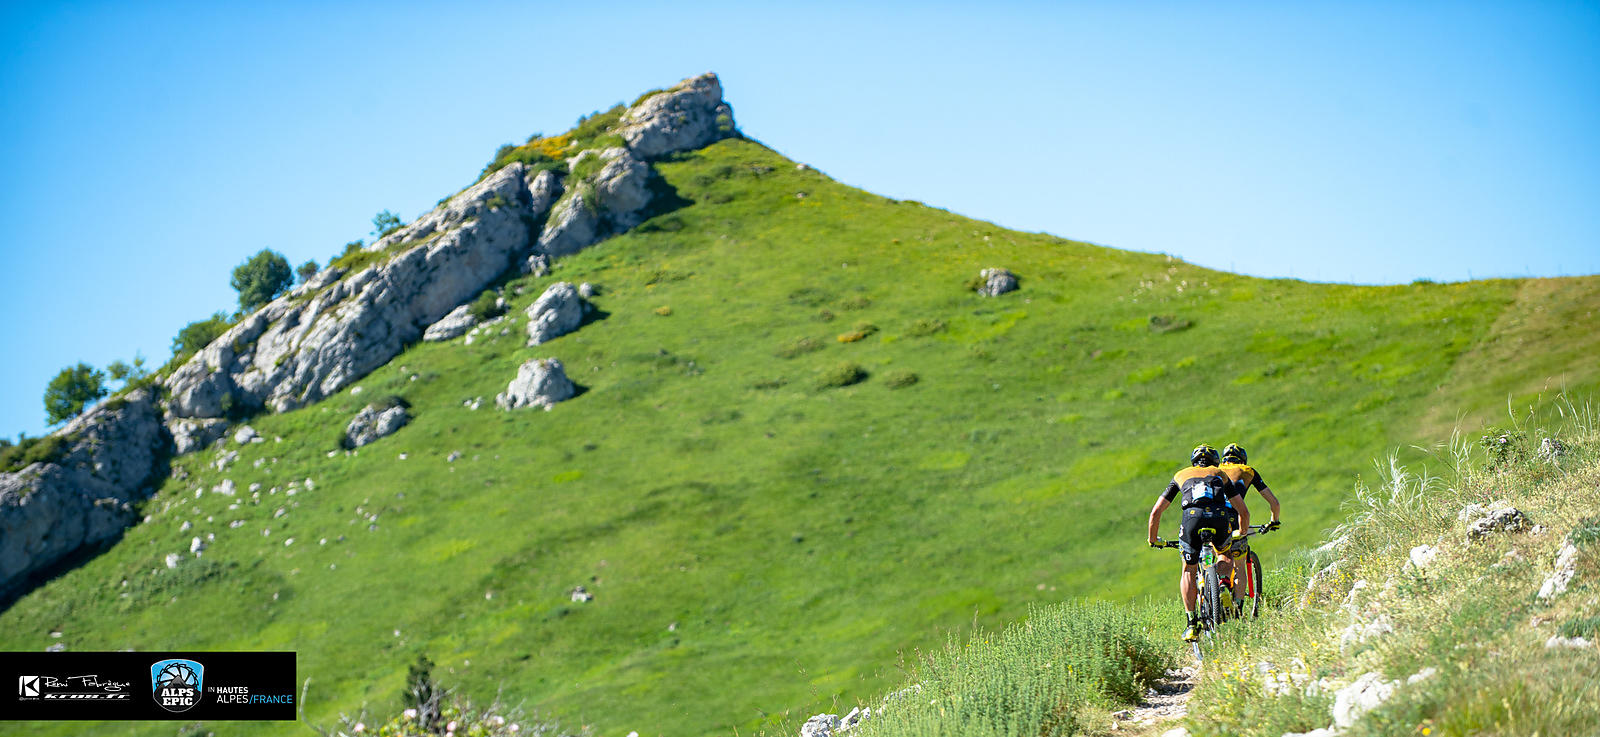 VendrediAlps_AgenceKros_RemiFABREGUE_(4_sur_19)